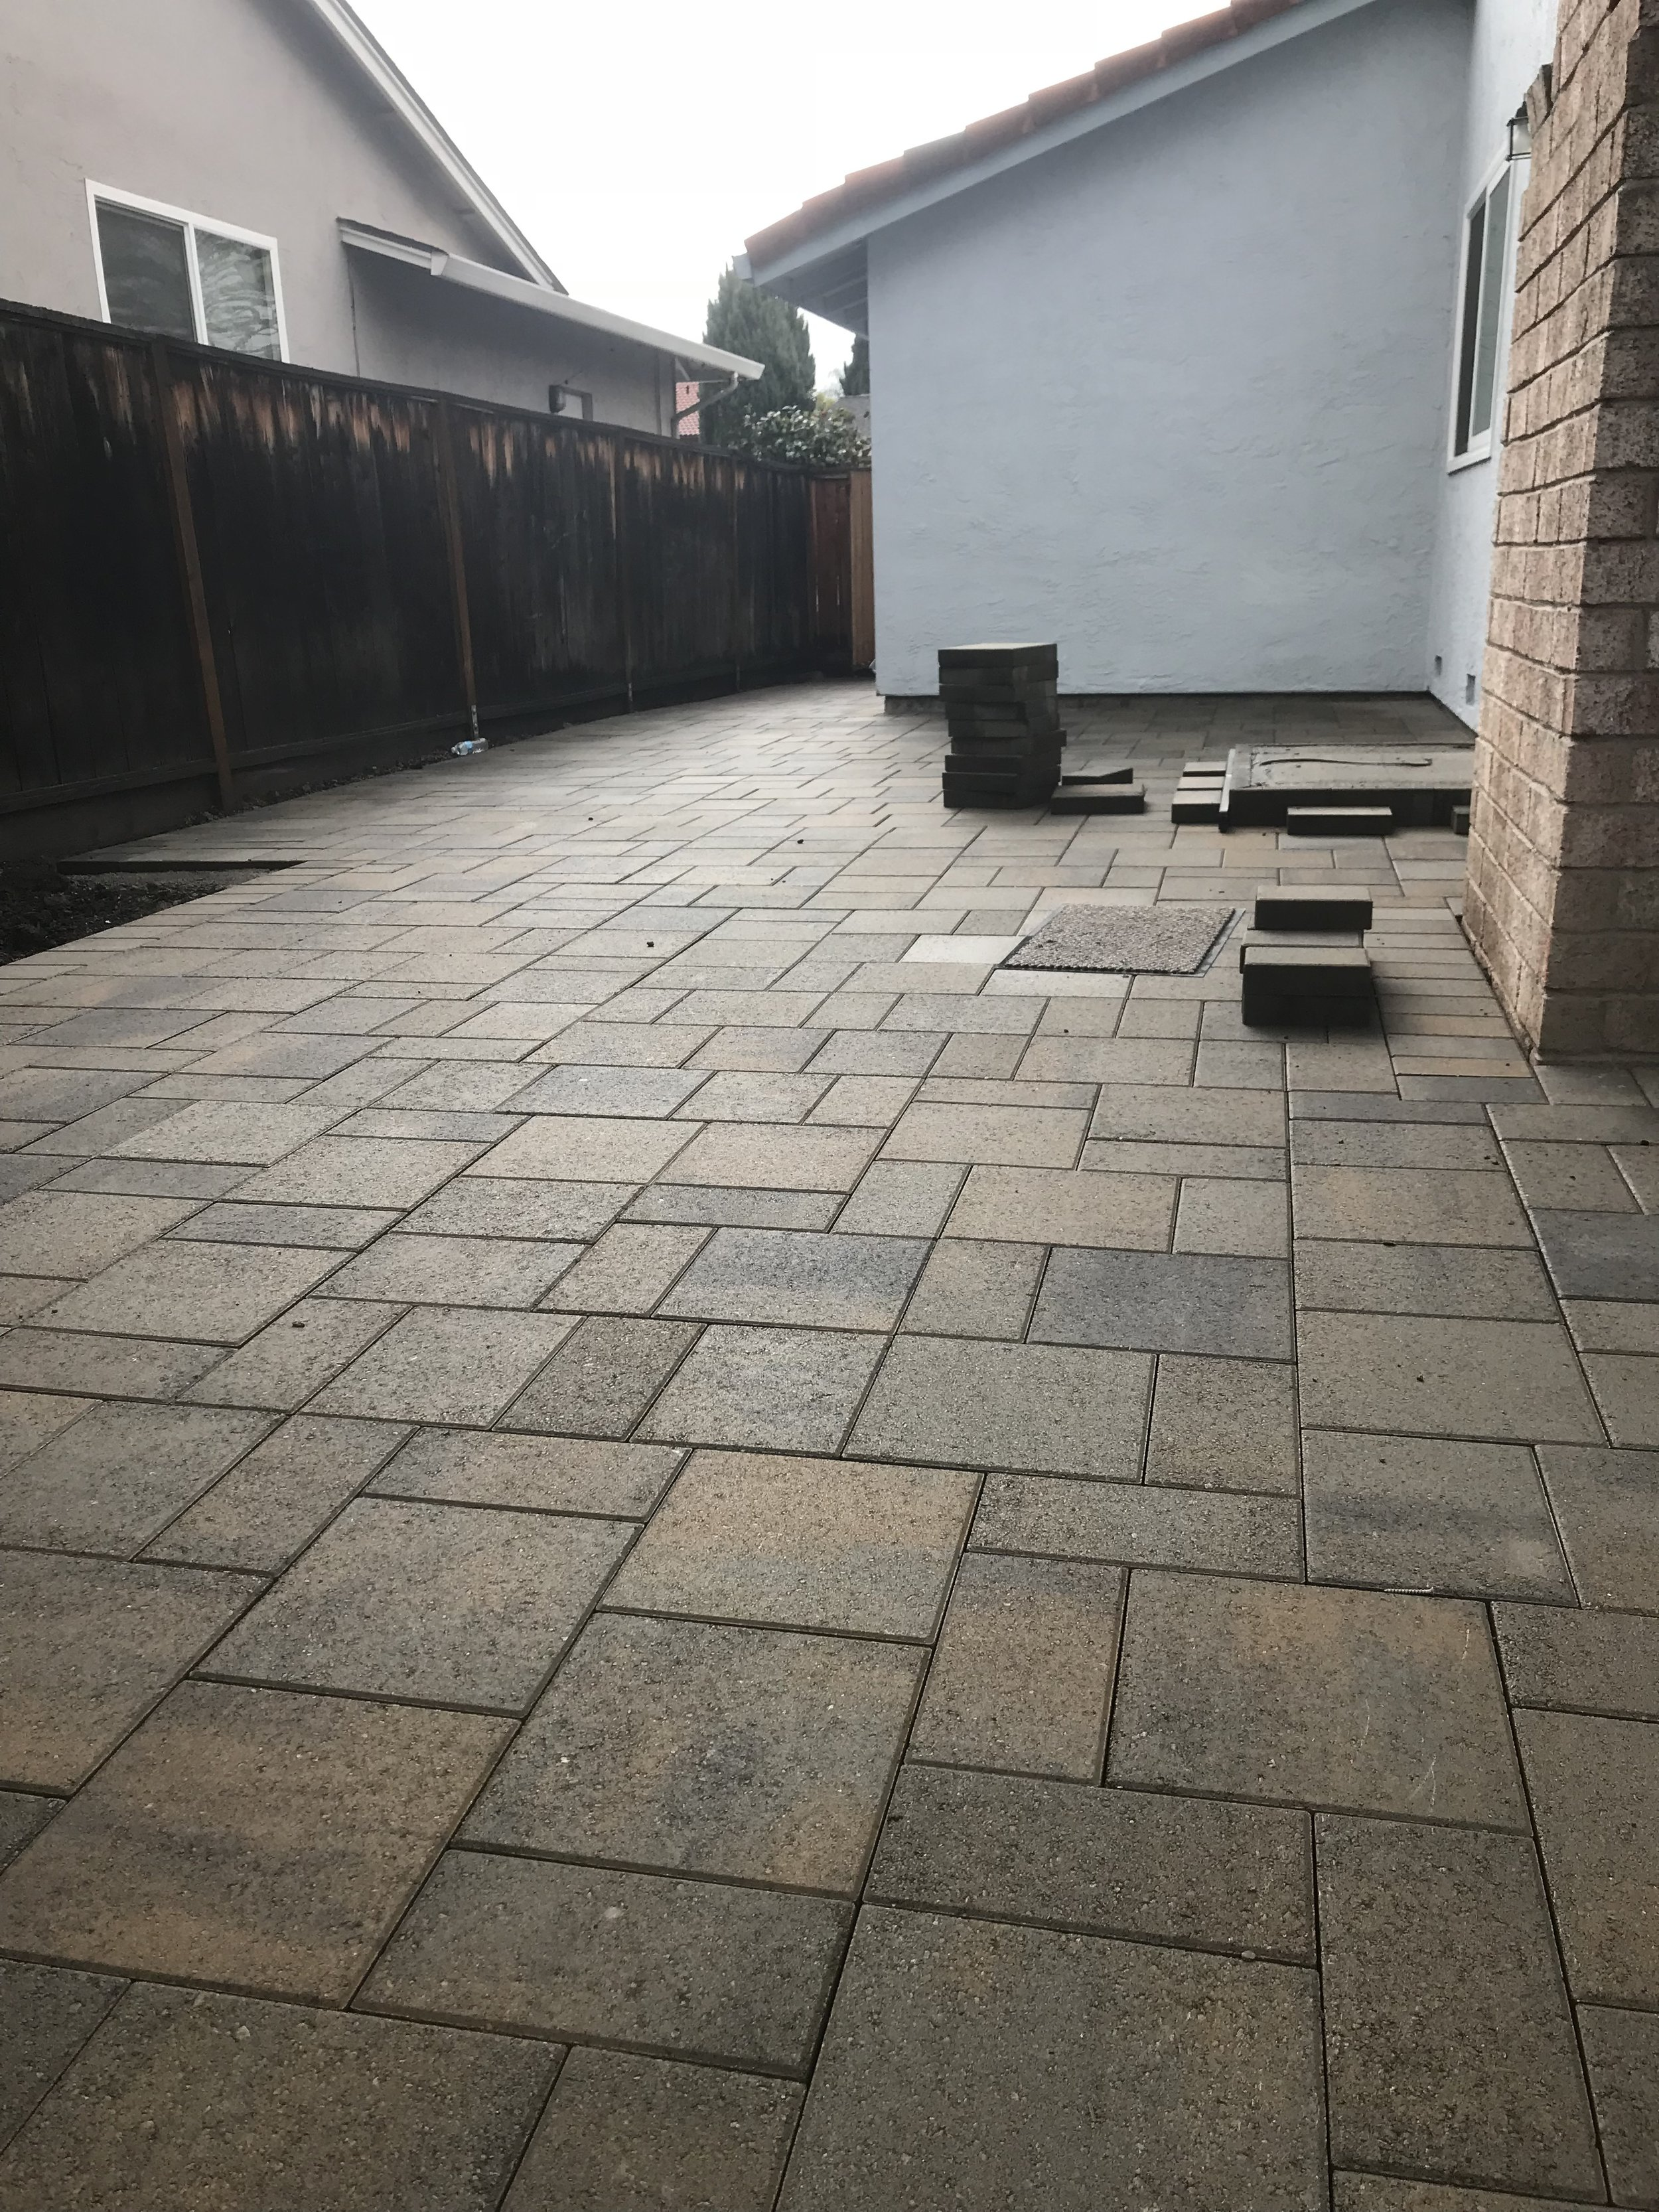 The Belgard Catalina Grana brings you the smallest gap between each paver.